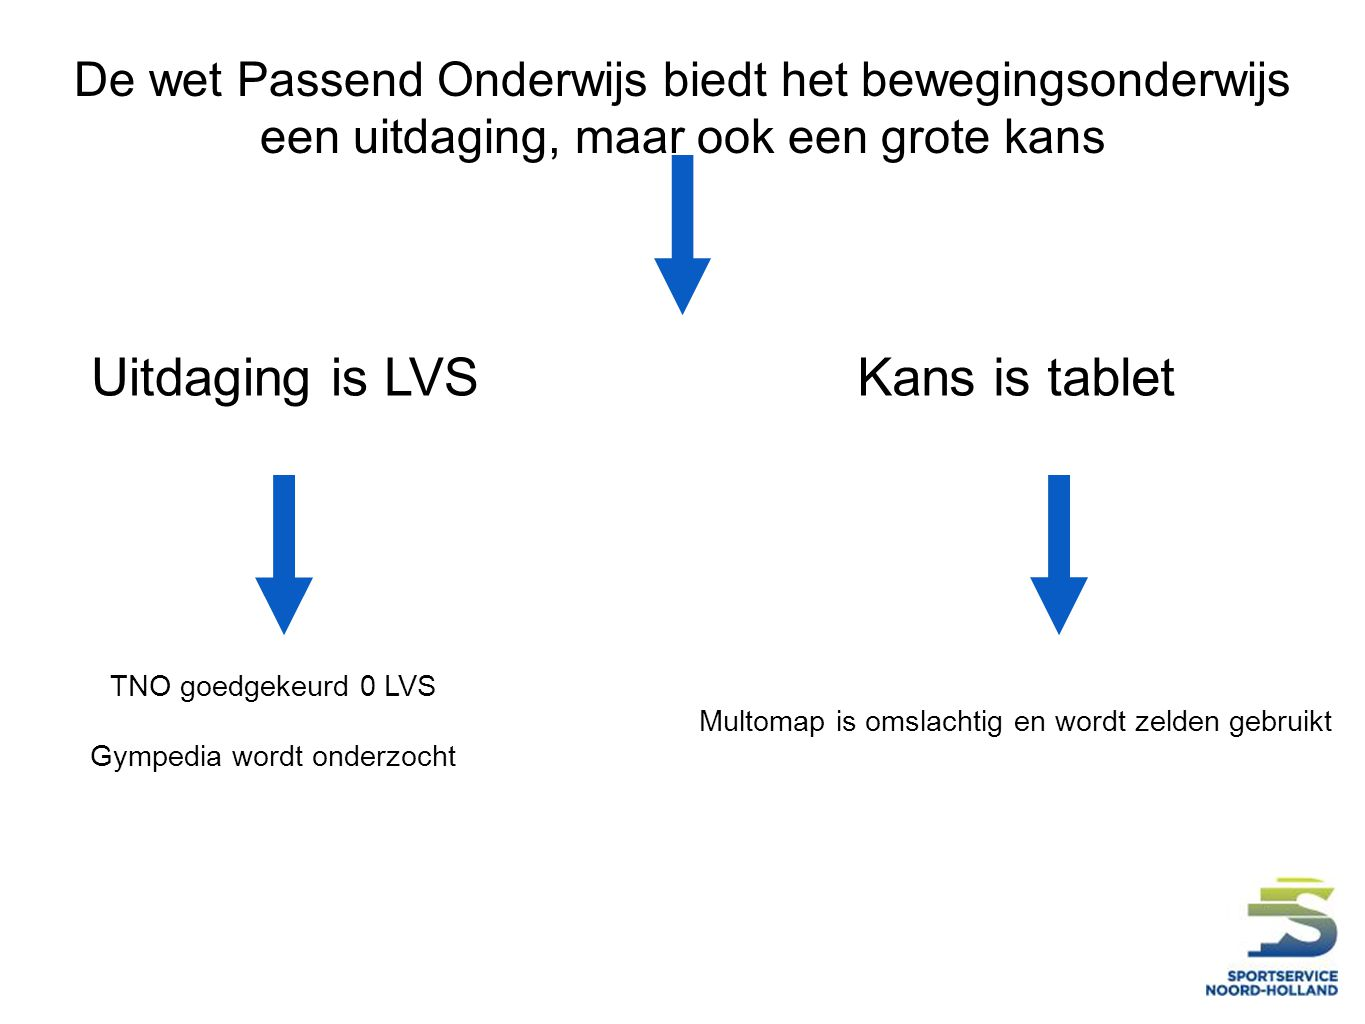 Uitdaging is LVS Kans is tablet